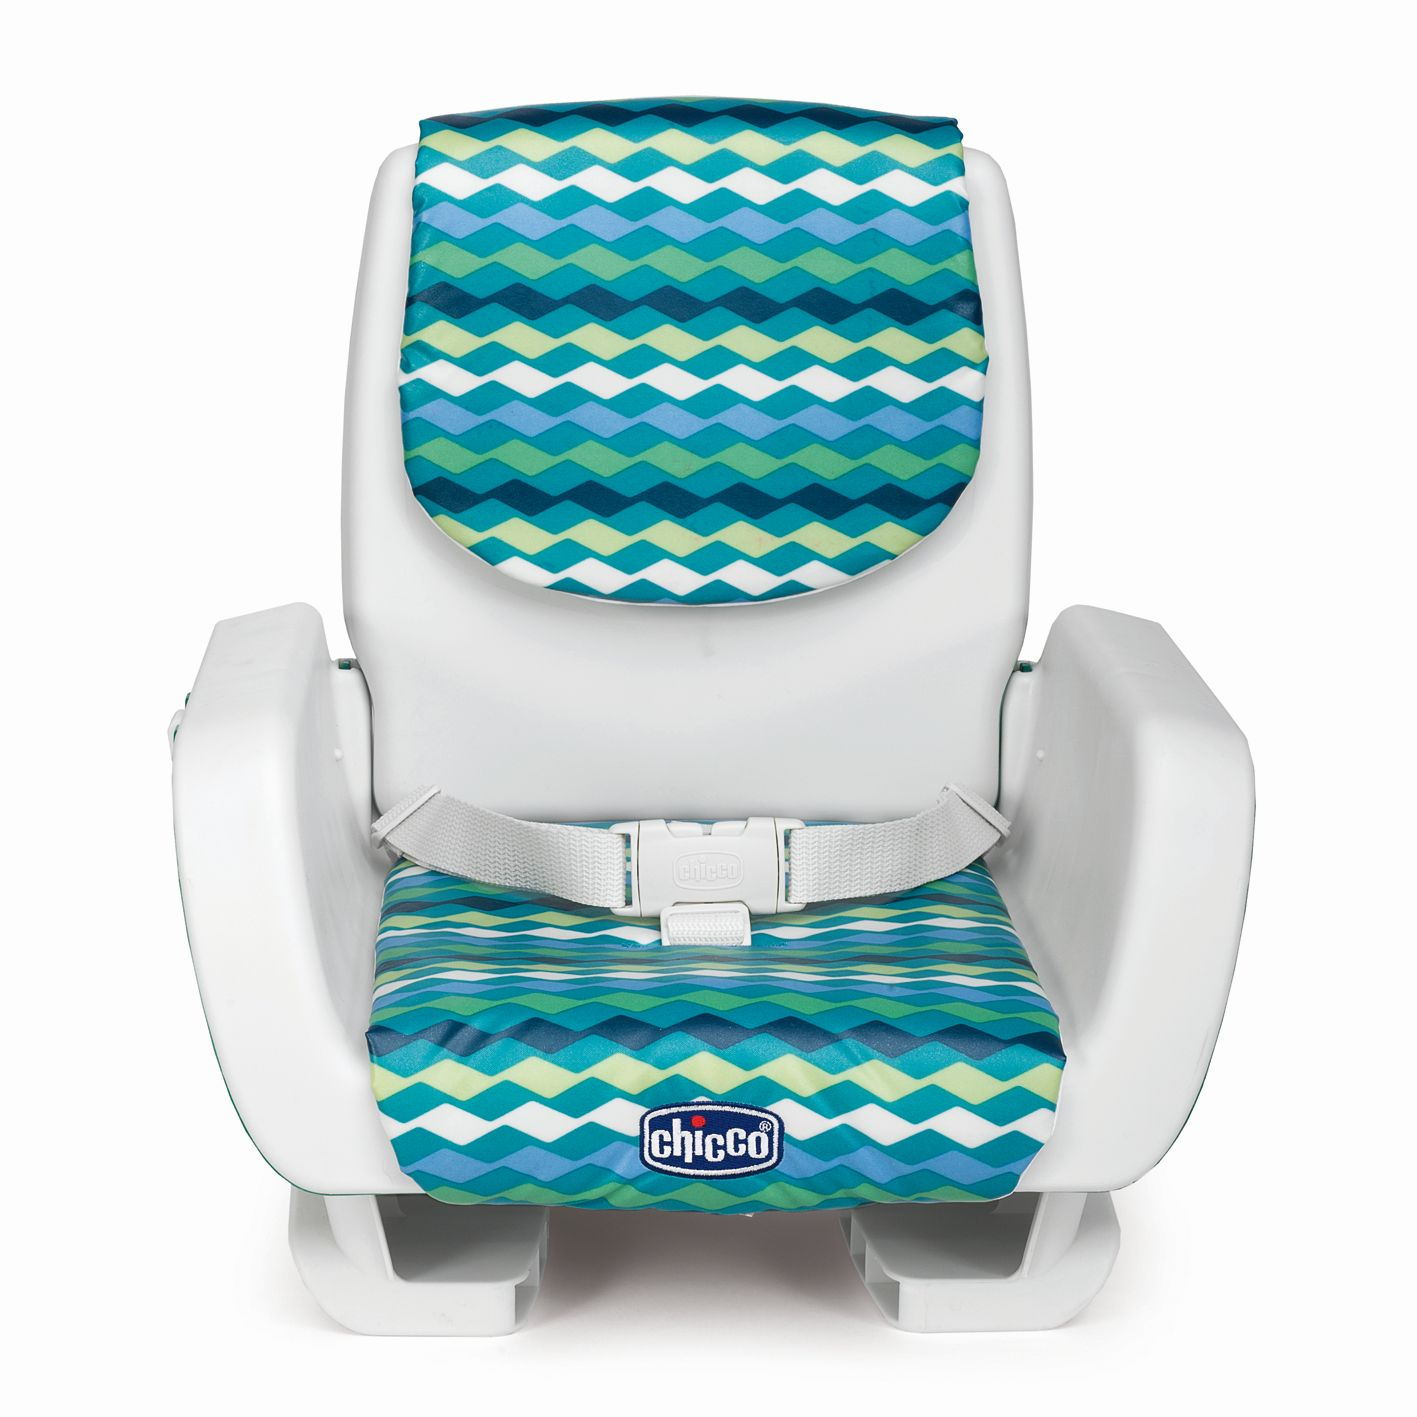 Chicco Booster Seat Mode 2018 Mars Buy At Kidsroom